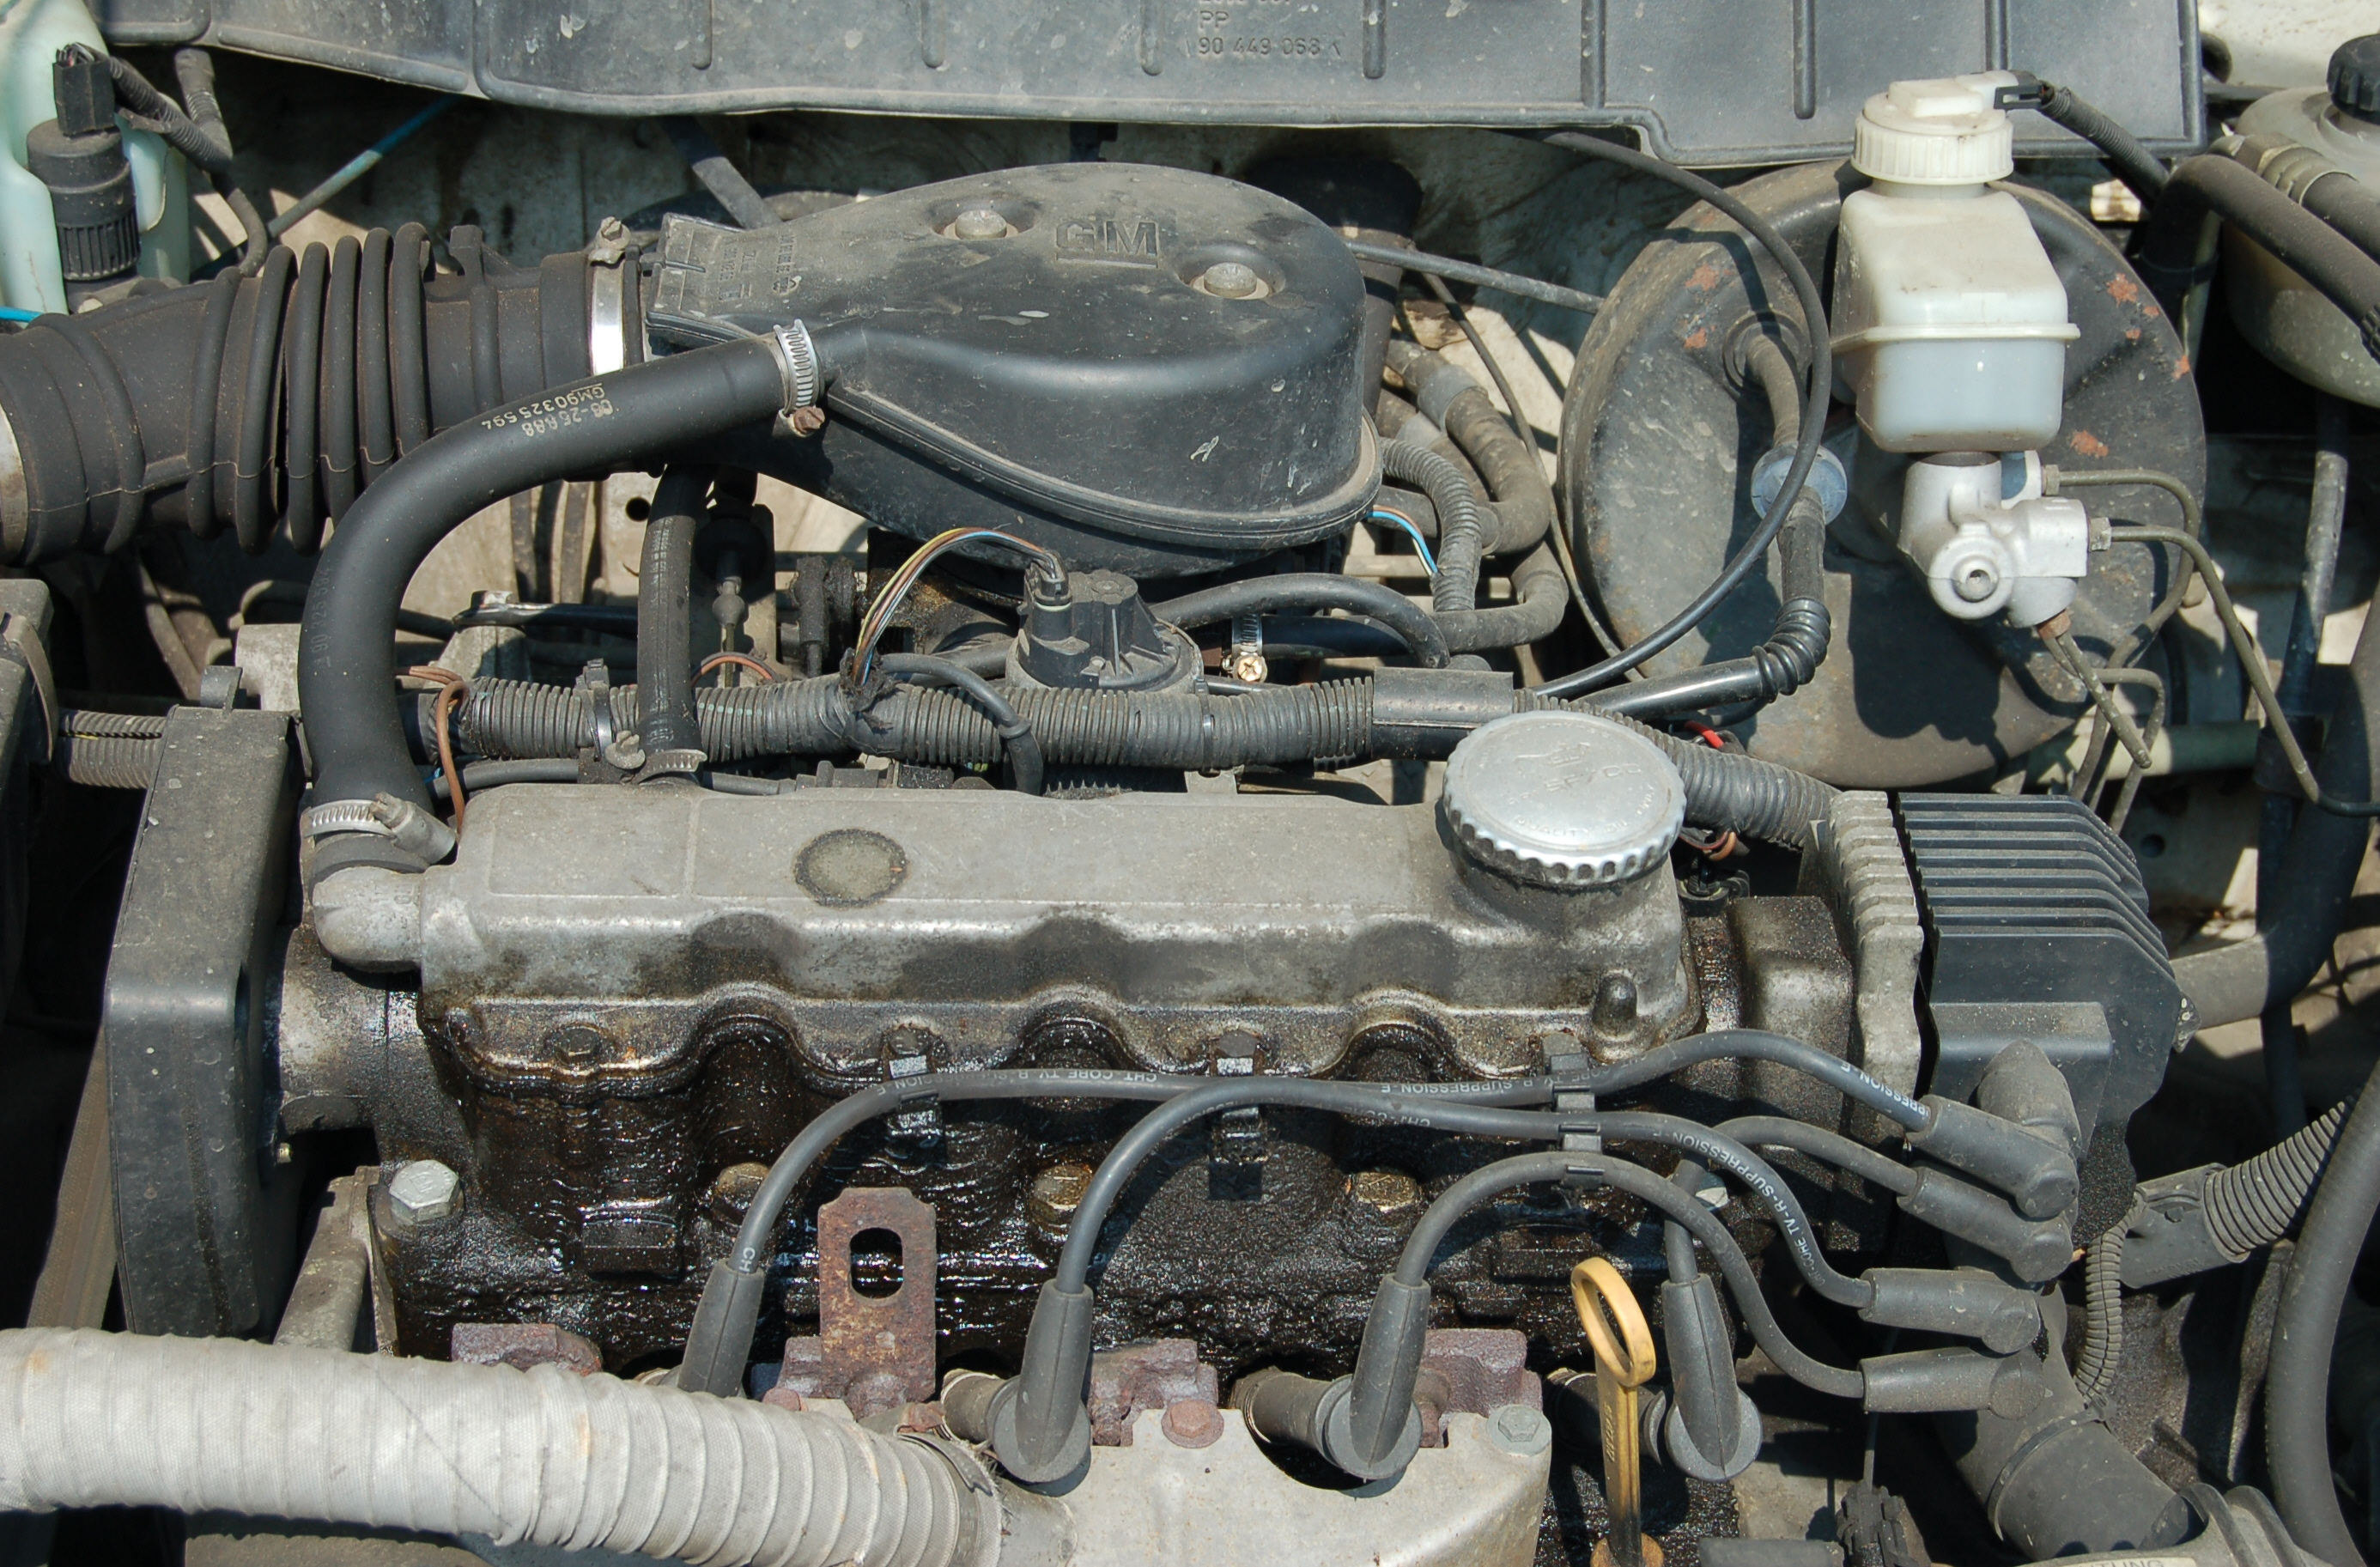 opel astra f 1995 wiring diagram 2007 chevy tahoe parts 305 engine spark plug get free image